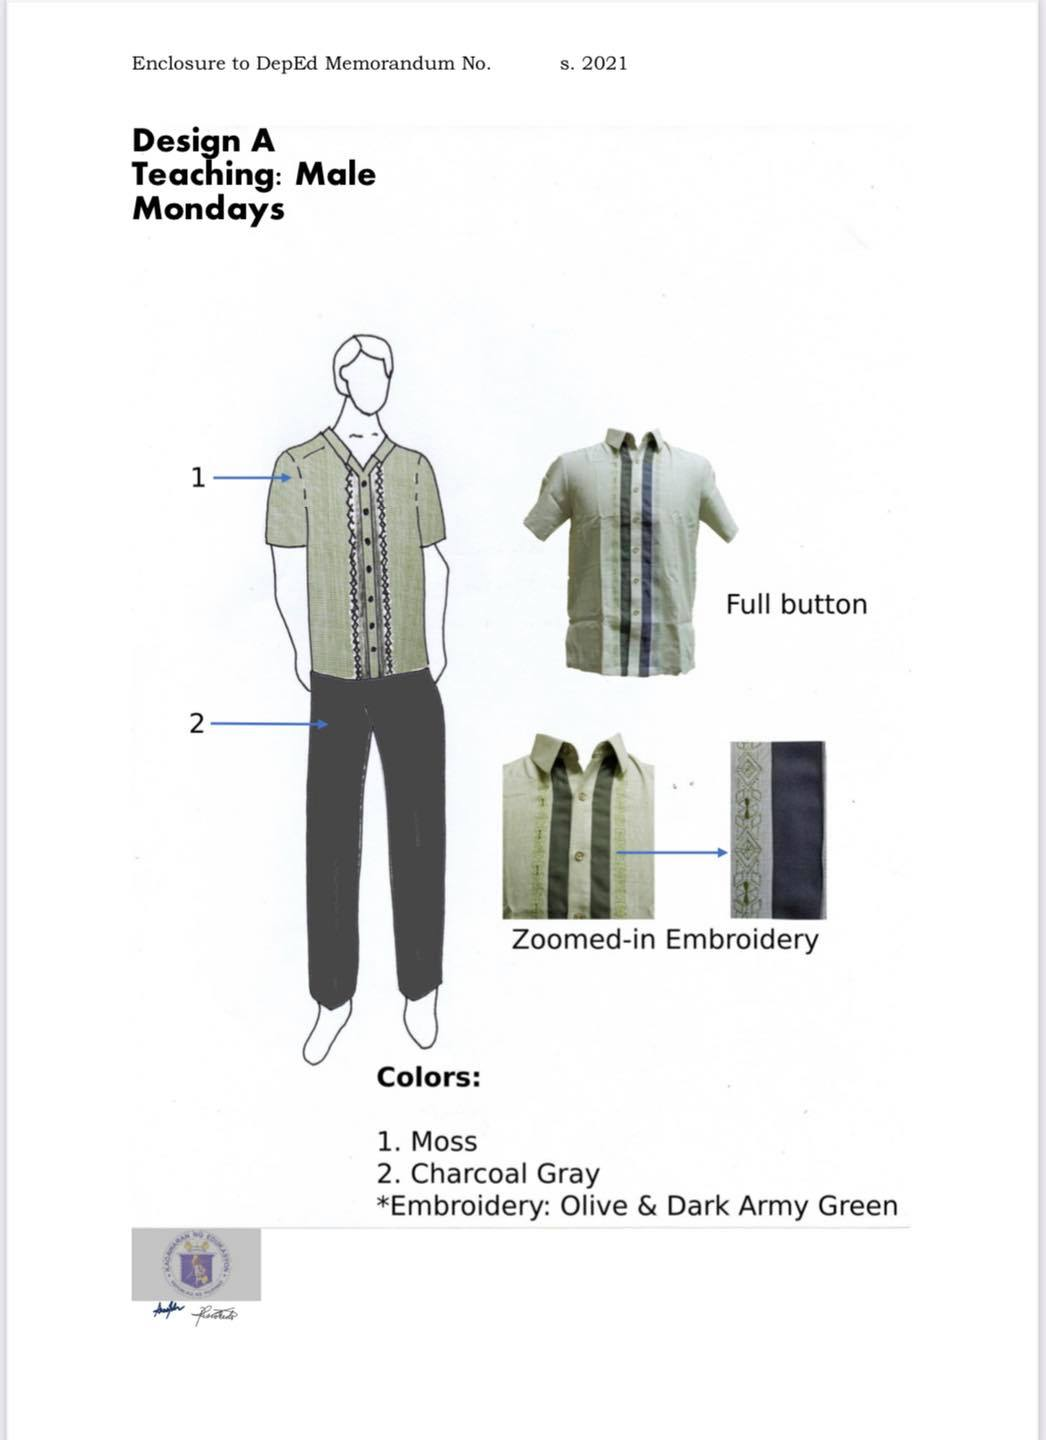 DepEd National Uniform Design A for Male Teaching Personnel (Mondays)